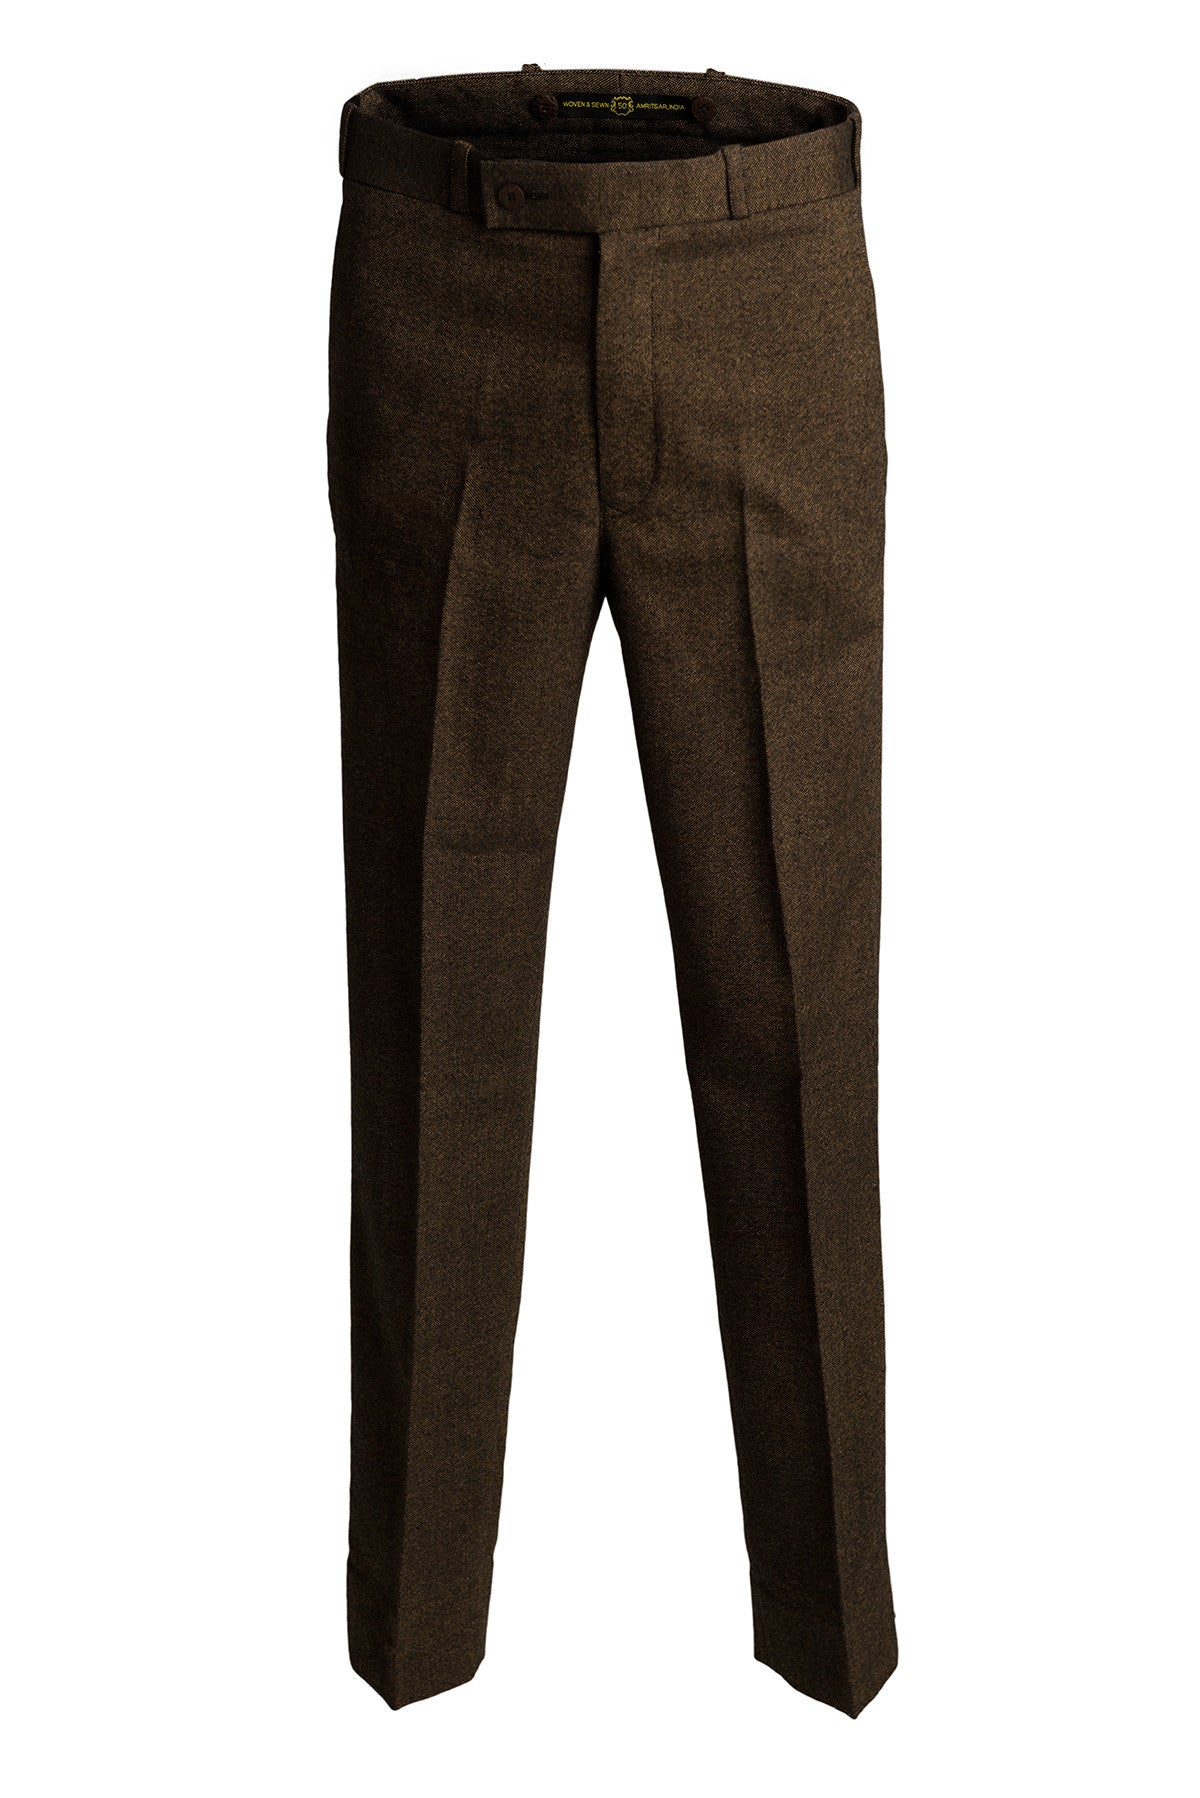 Shoreline - High Rise Pants